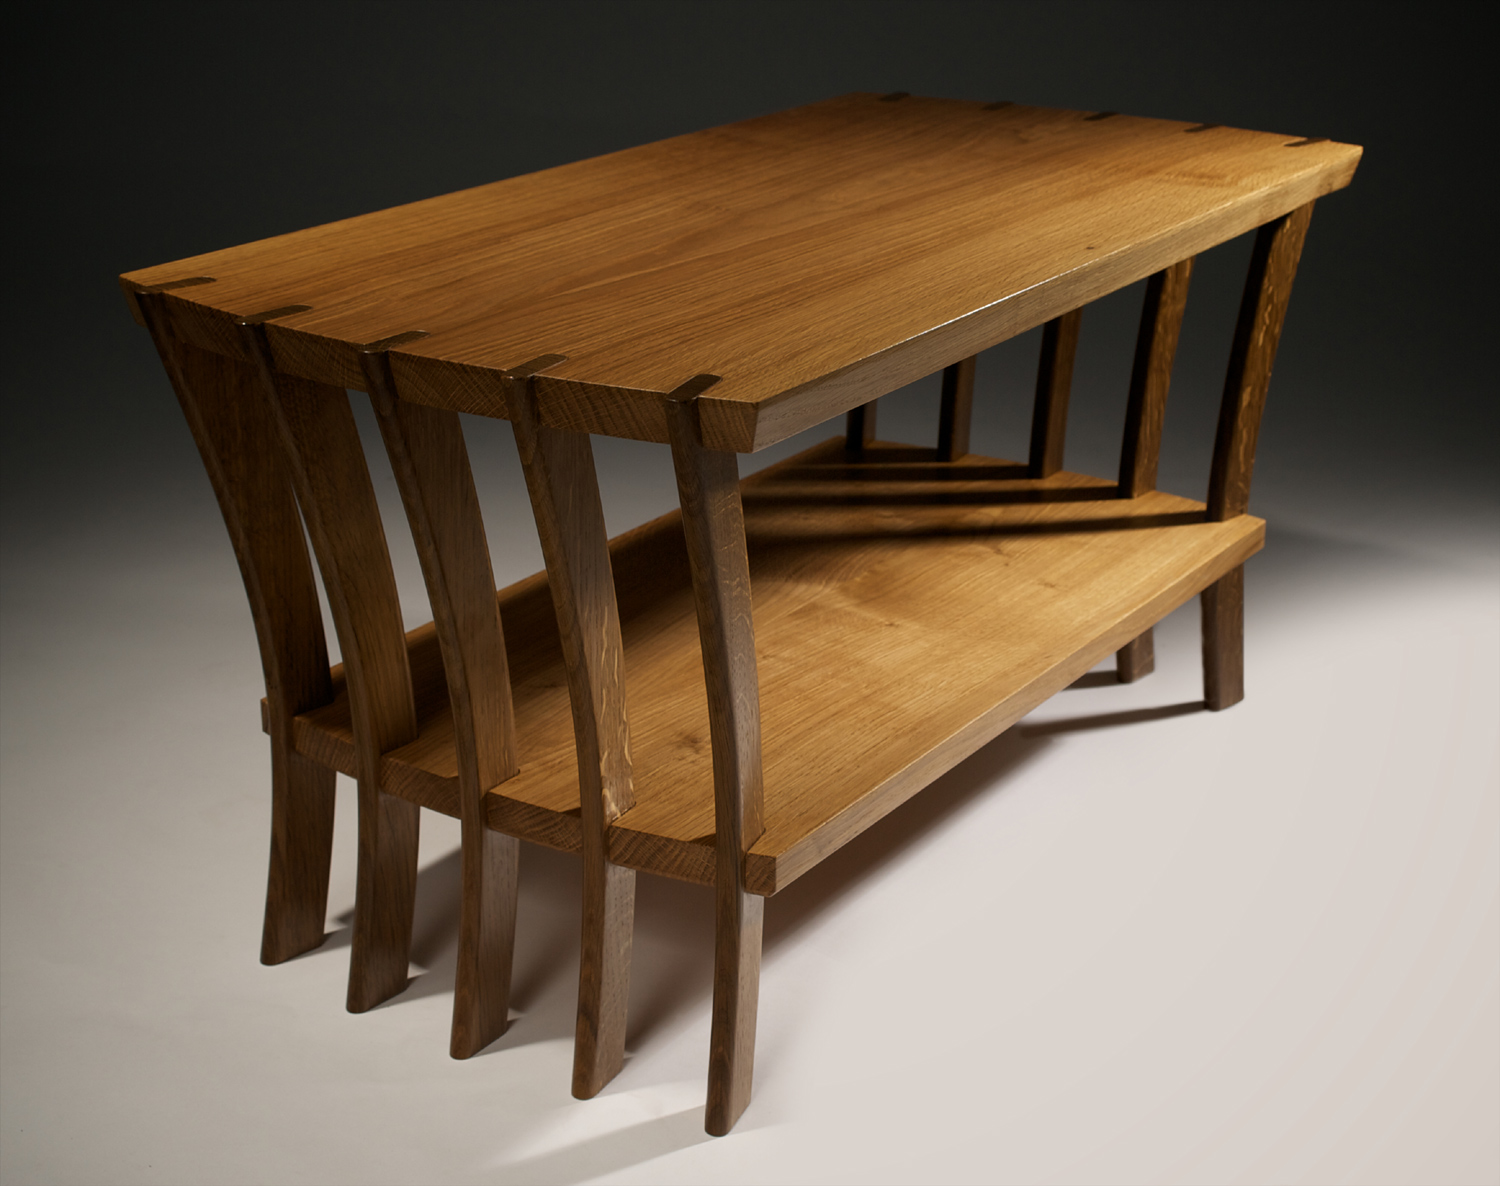 Rara Avis Coffee Table